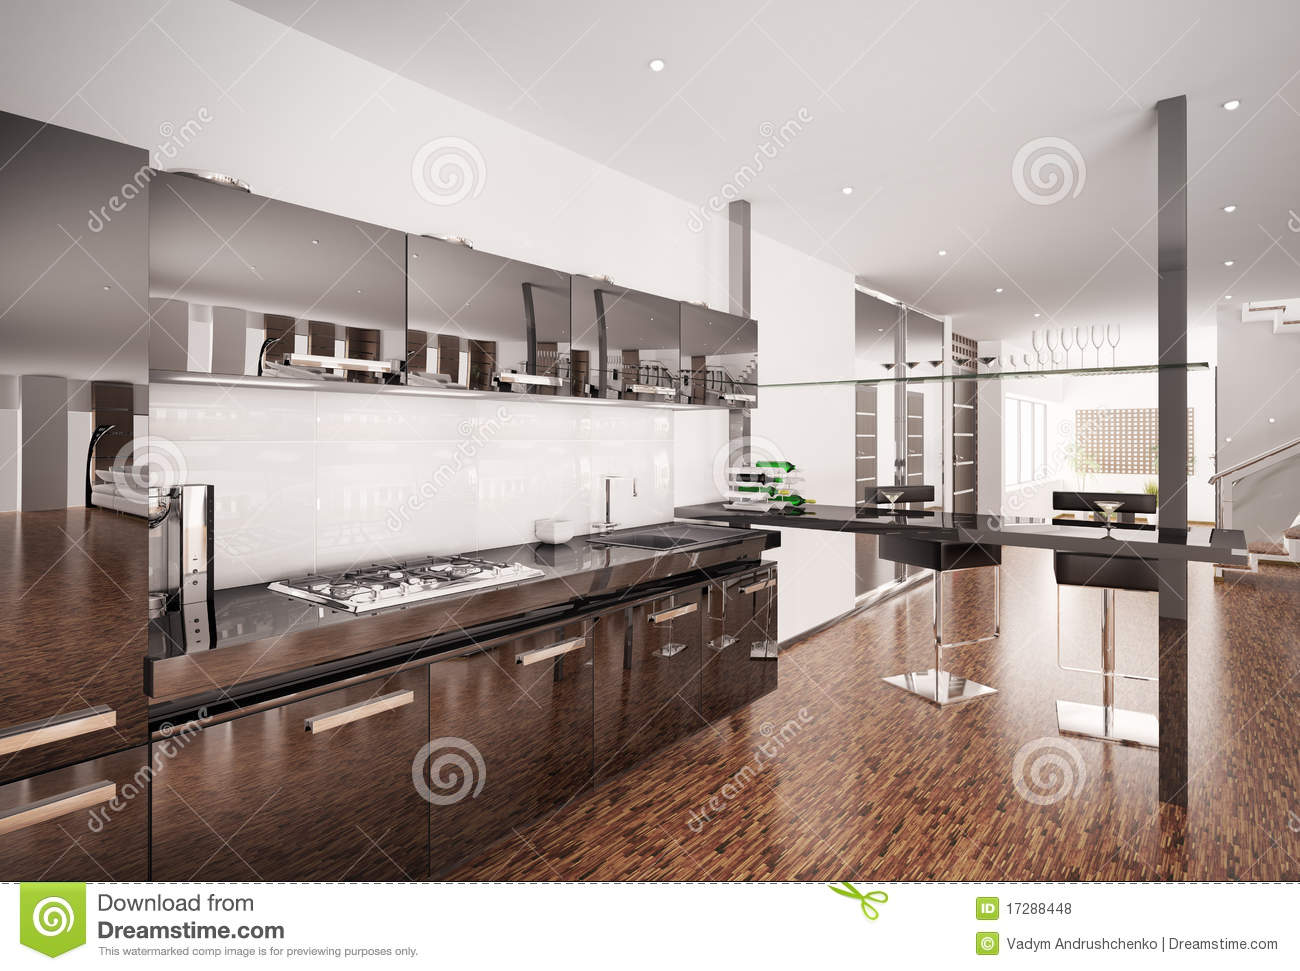 Kitchen Modern Black modern black kitchen interior 3d render stock images - image: 17220684